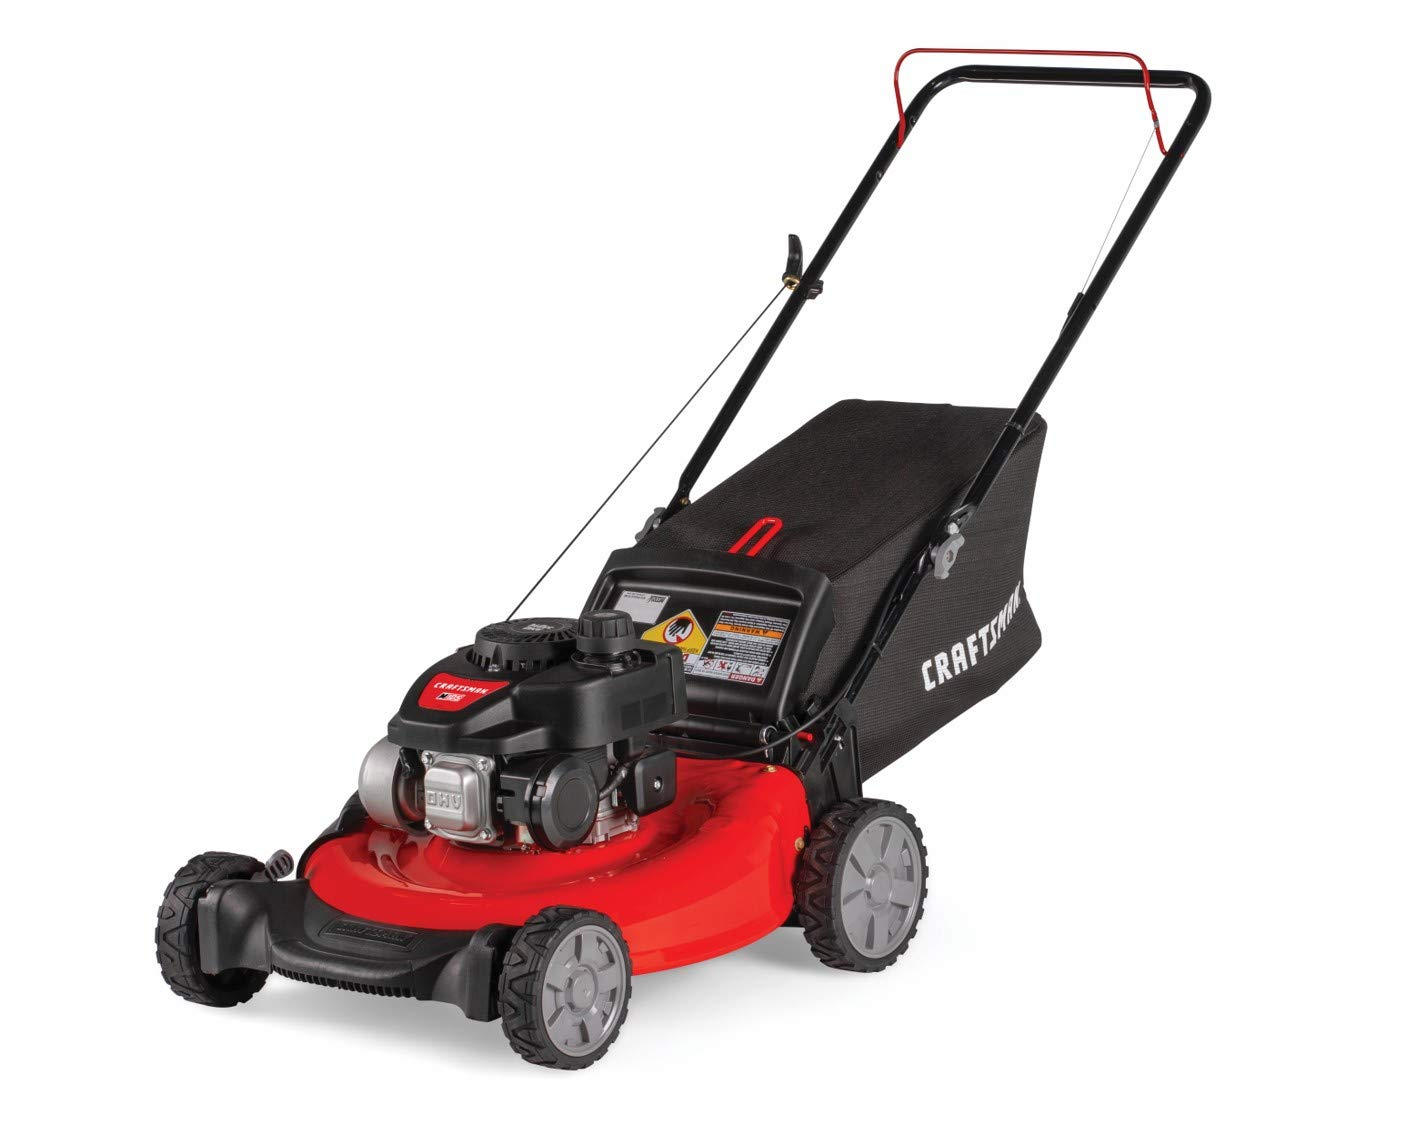 Craftsman M105 140cc 21-Inch 3-in-1 Gas Powered Push Lawn Mower with Bagger by Craftsman